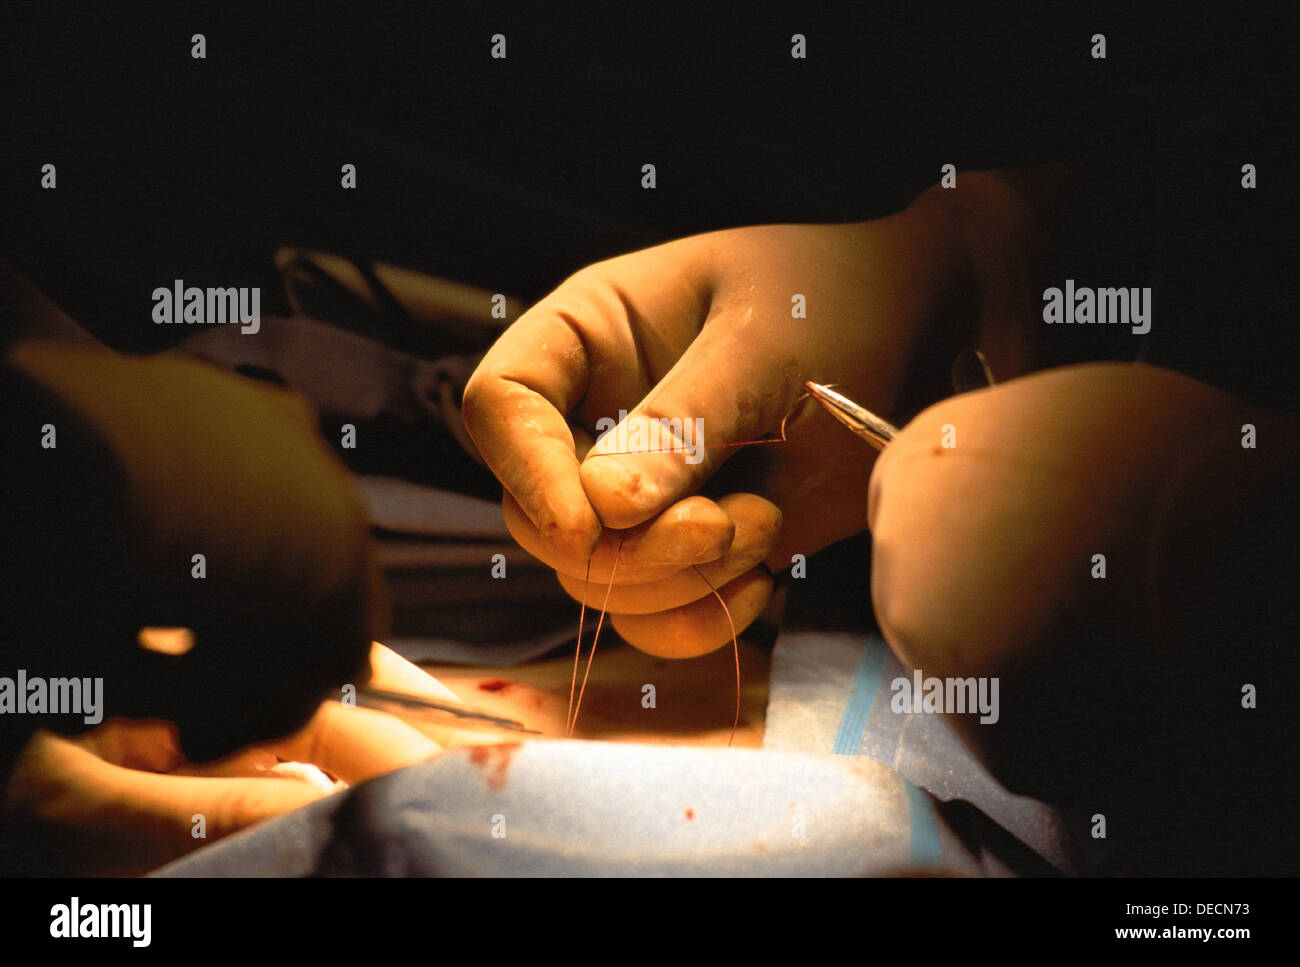 CLOSE UP OF HANDS IN SURGICAL GLOVES STITCHING WOUND - Stock Image